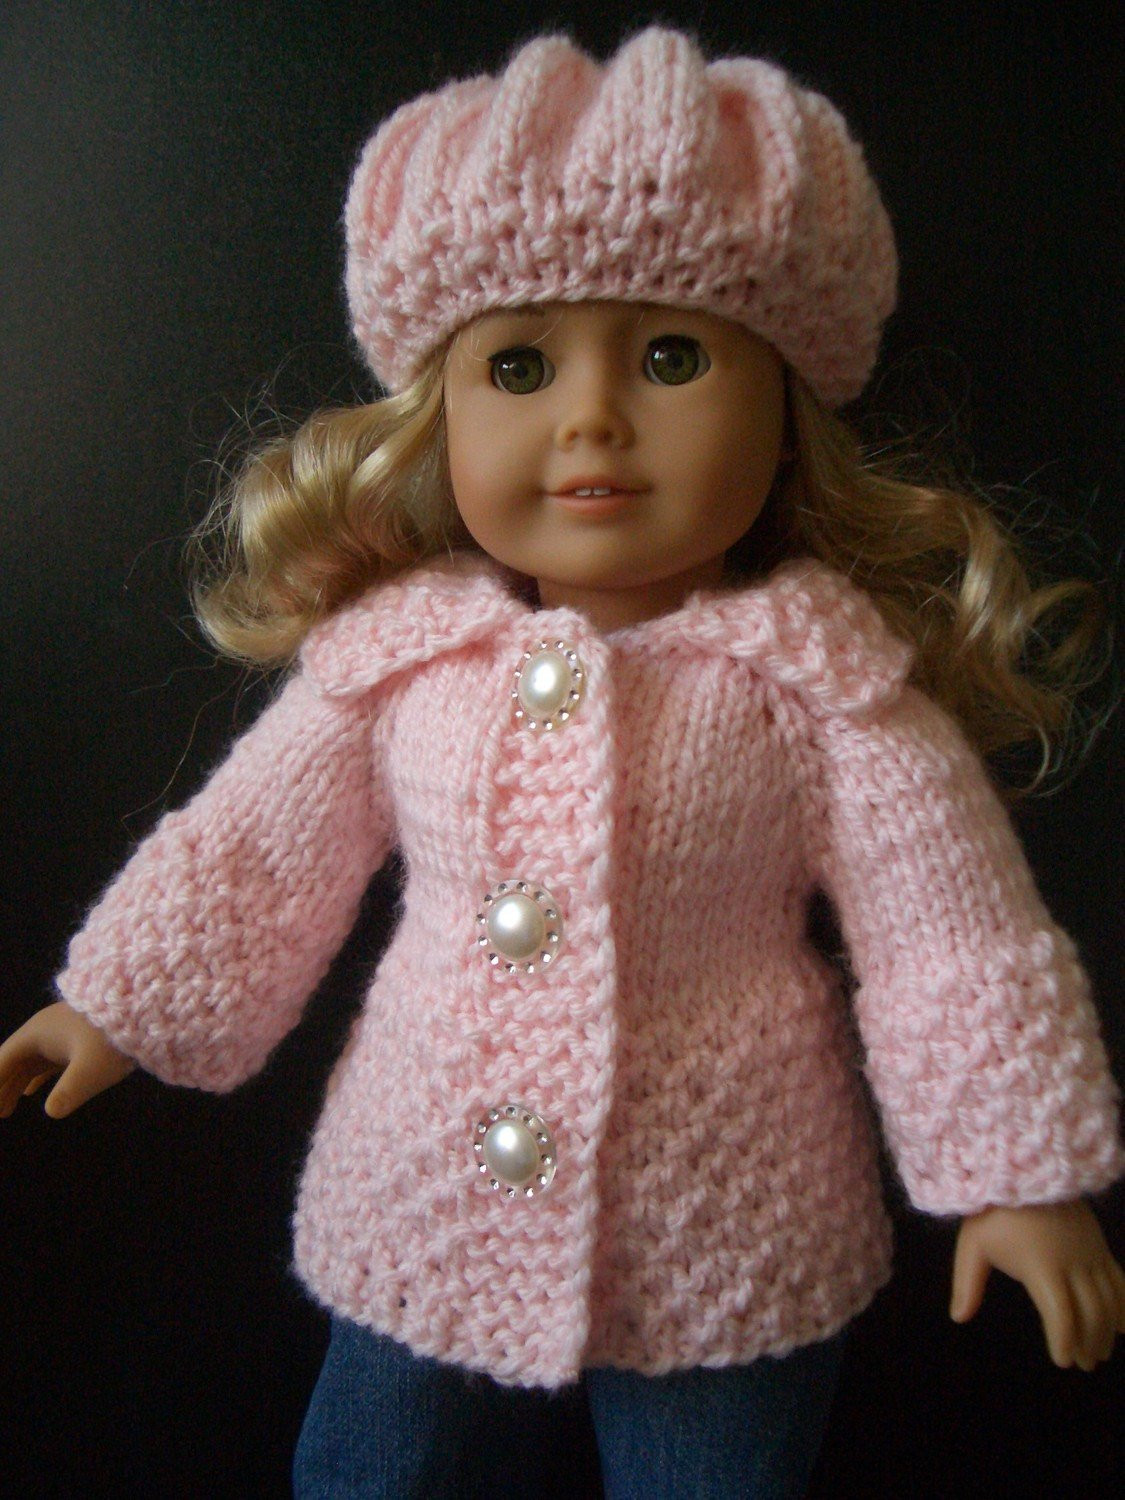 Unique Knitting Pattern with Video for American Girl 18 Inch Doll Free Knitting Patterns for American Girl Dolls Of Delightful 41 Models Free Knitting Patterns for American Girl Dolls